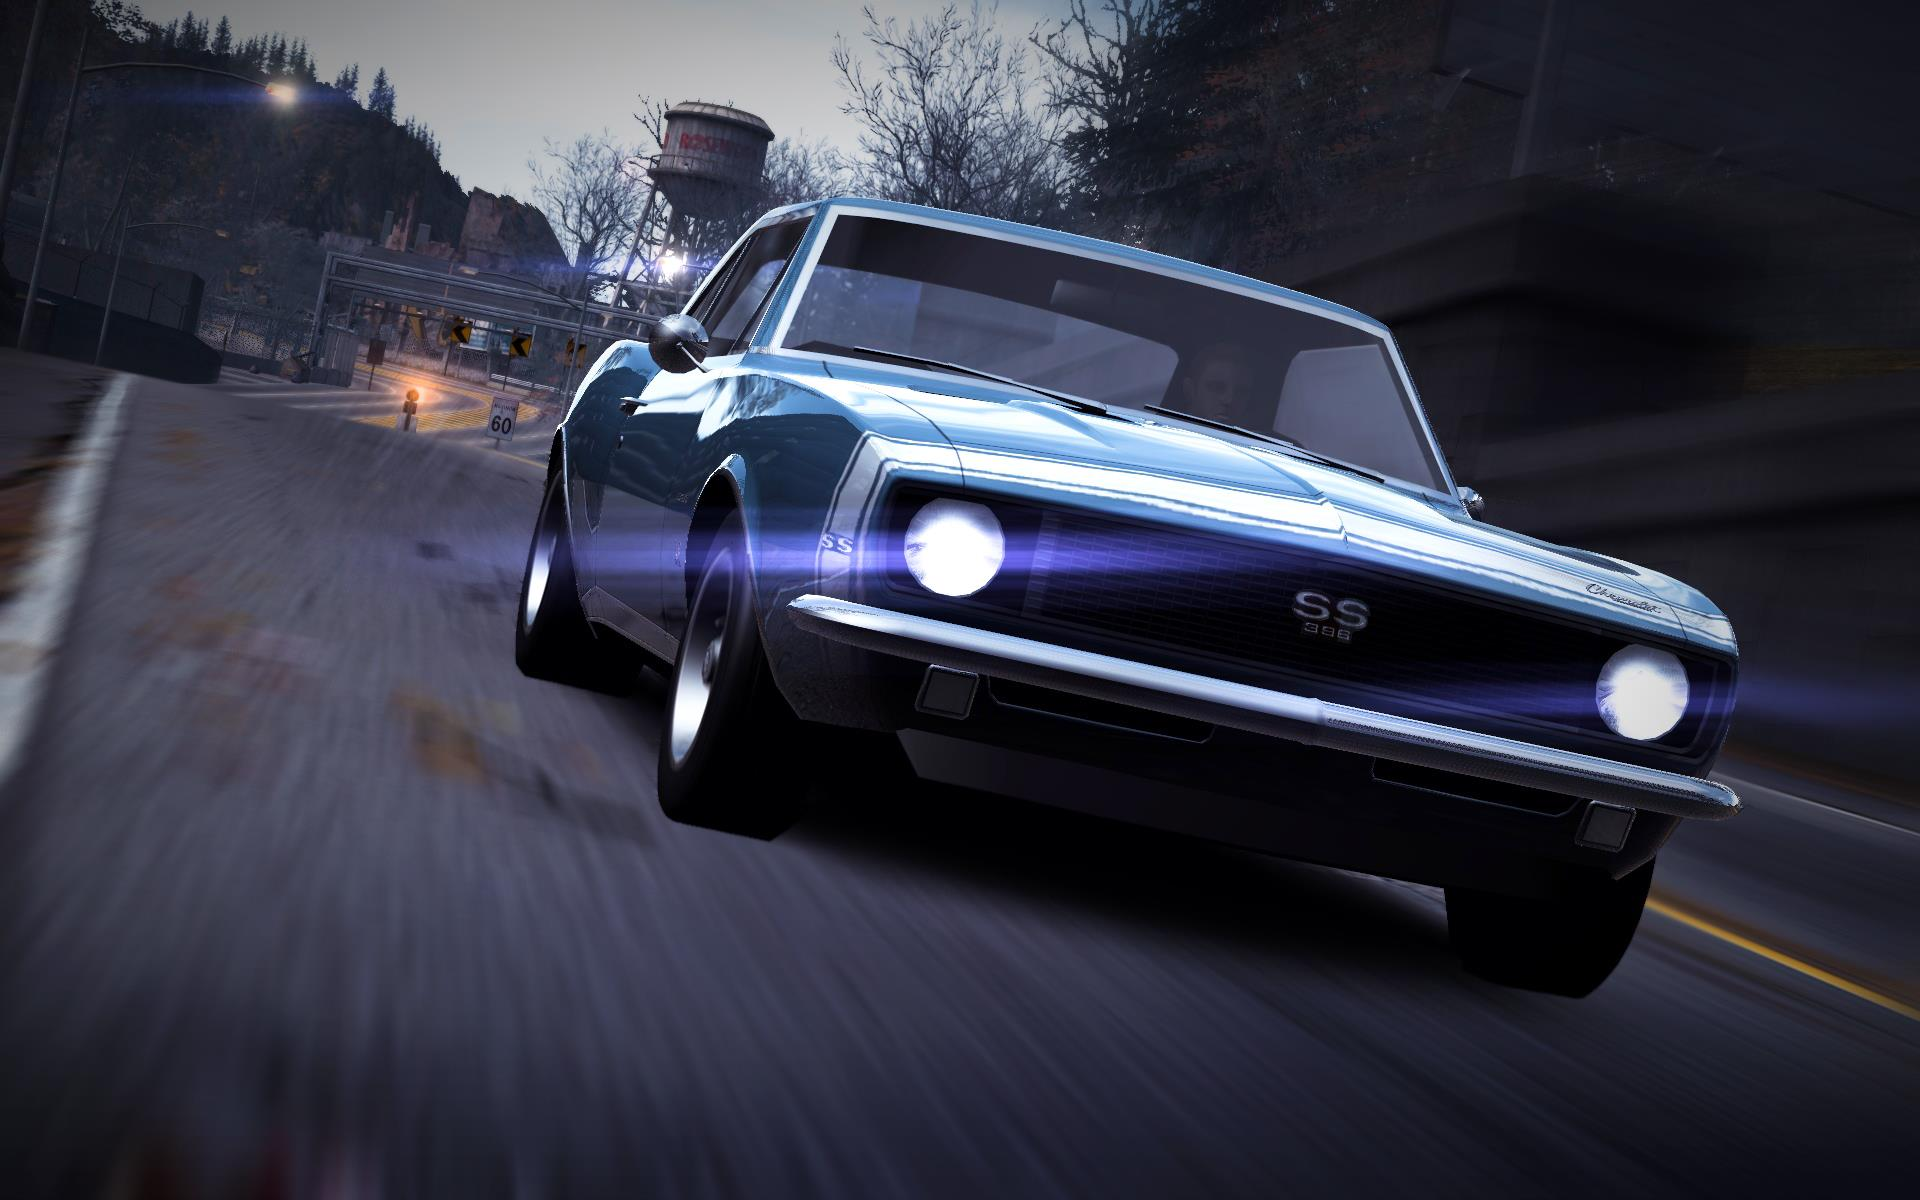 old camaro wallpapers 34 wallpapers � adorable wallpapers